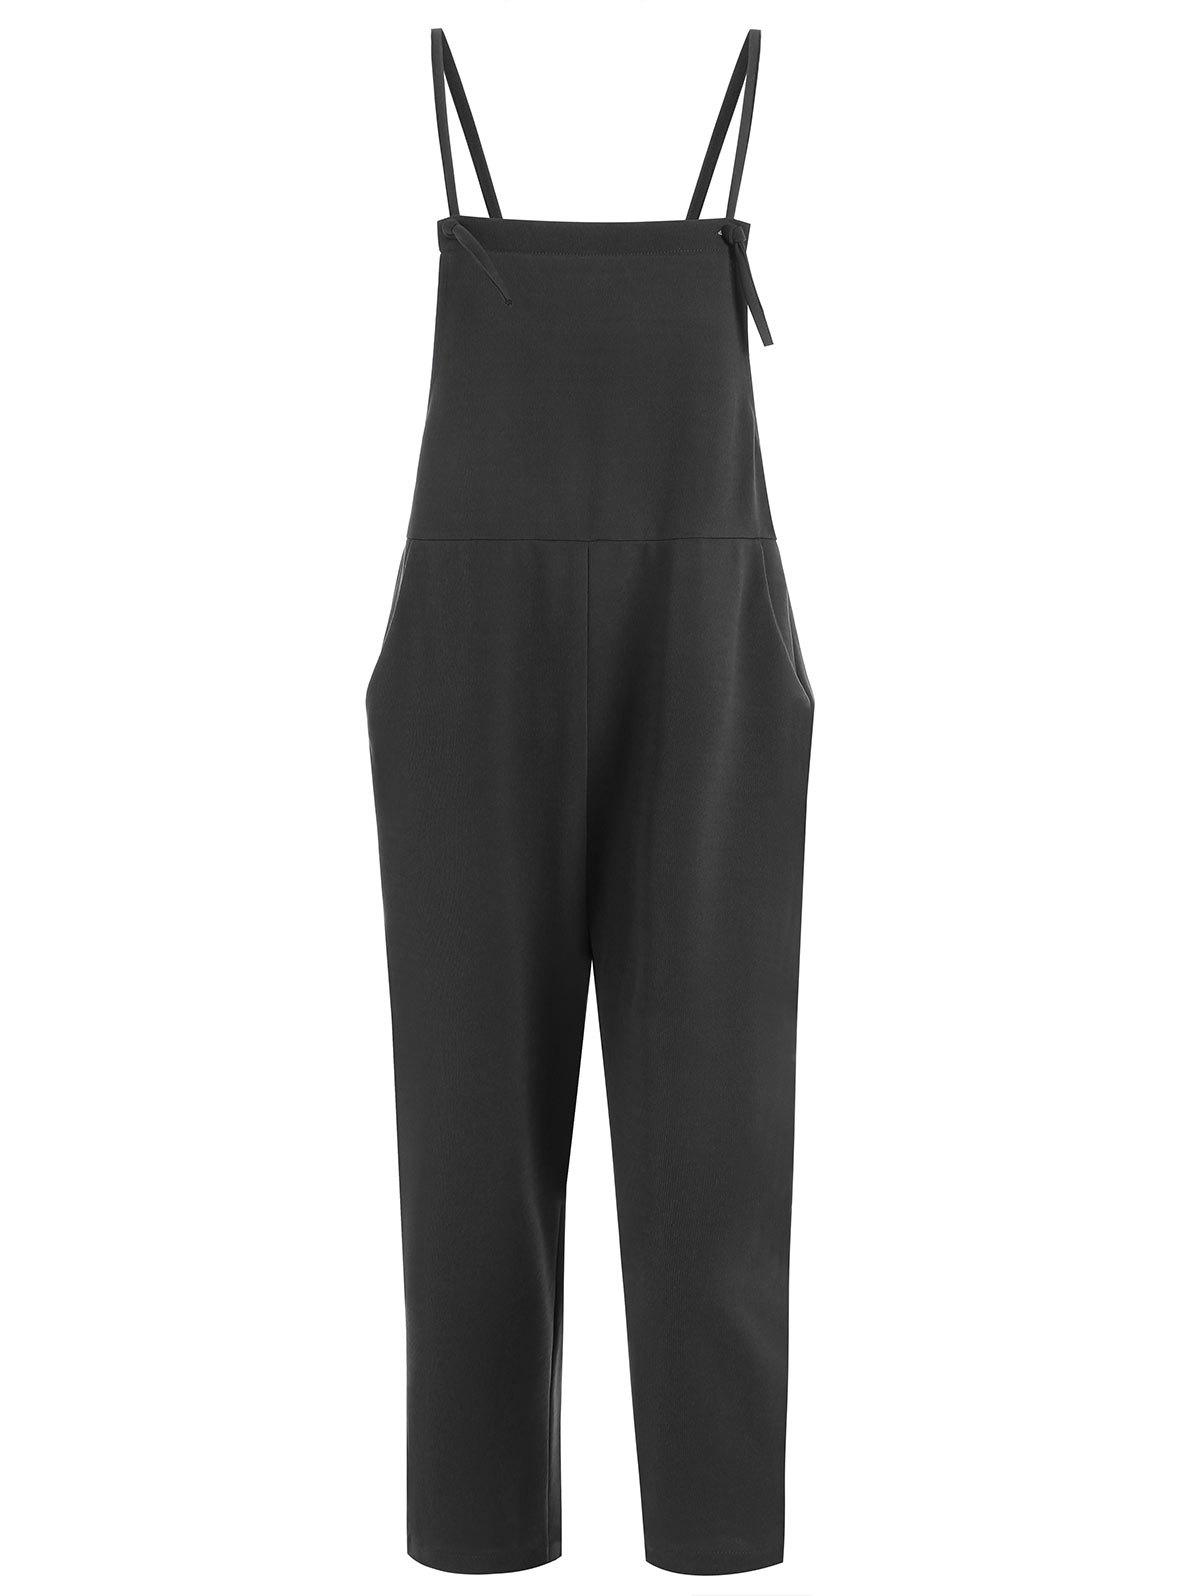 Plus Size Overalls with PocketWOMEN<br><br>Size: 2XL; Color: BLACK; Style: Casual; Length: Normal; Material: Polyester; Fit Type: Regular; Waist Type: Mid; Closure Type: Button Fly; Pattern Type: Solid; Pant Style: Pencil Pants; With Belt: No; Weight: 0.3900kg; Package Contents: 1 x Overalls;